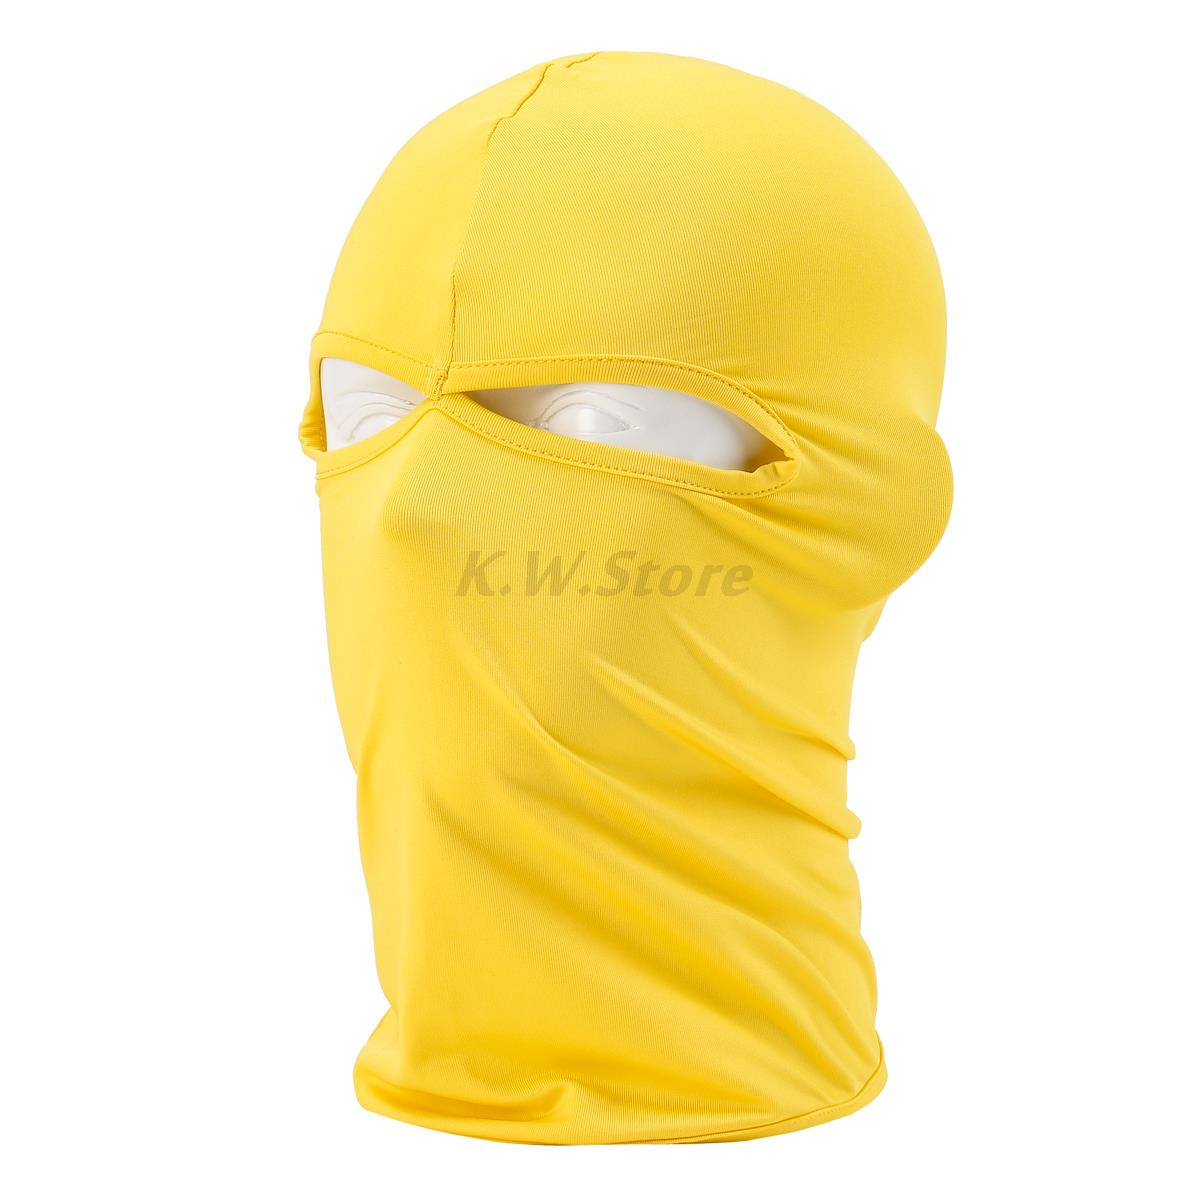 2017 Motorcycle Hats Bike Hunting paintball Cap Headwear Cycling Mask Balaclava Hat Military Tactical War Game Headgear Yellow free shipping rm1 6319 film 100% new original laser jet for hp p3015 p3015dn fuser film sleeve printer part on sale